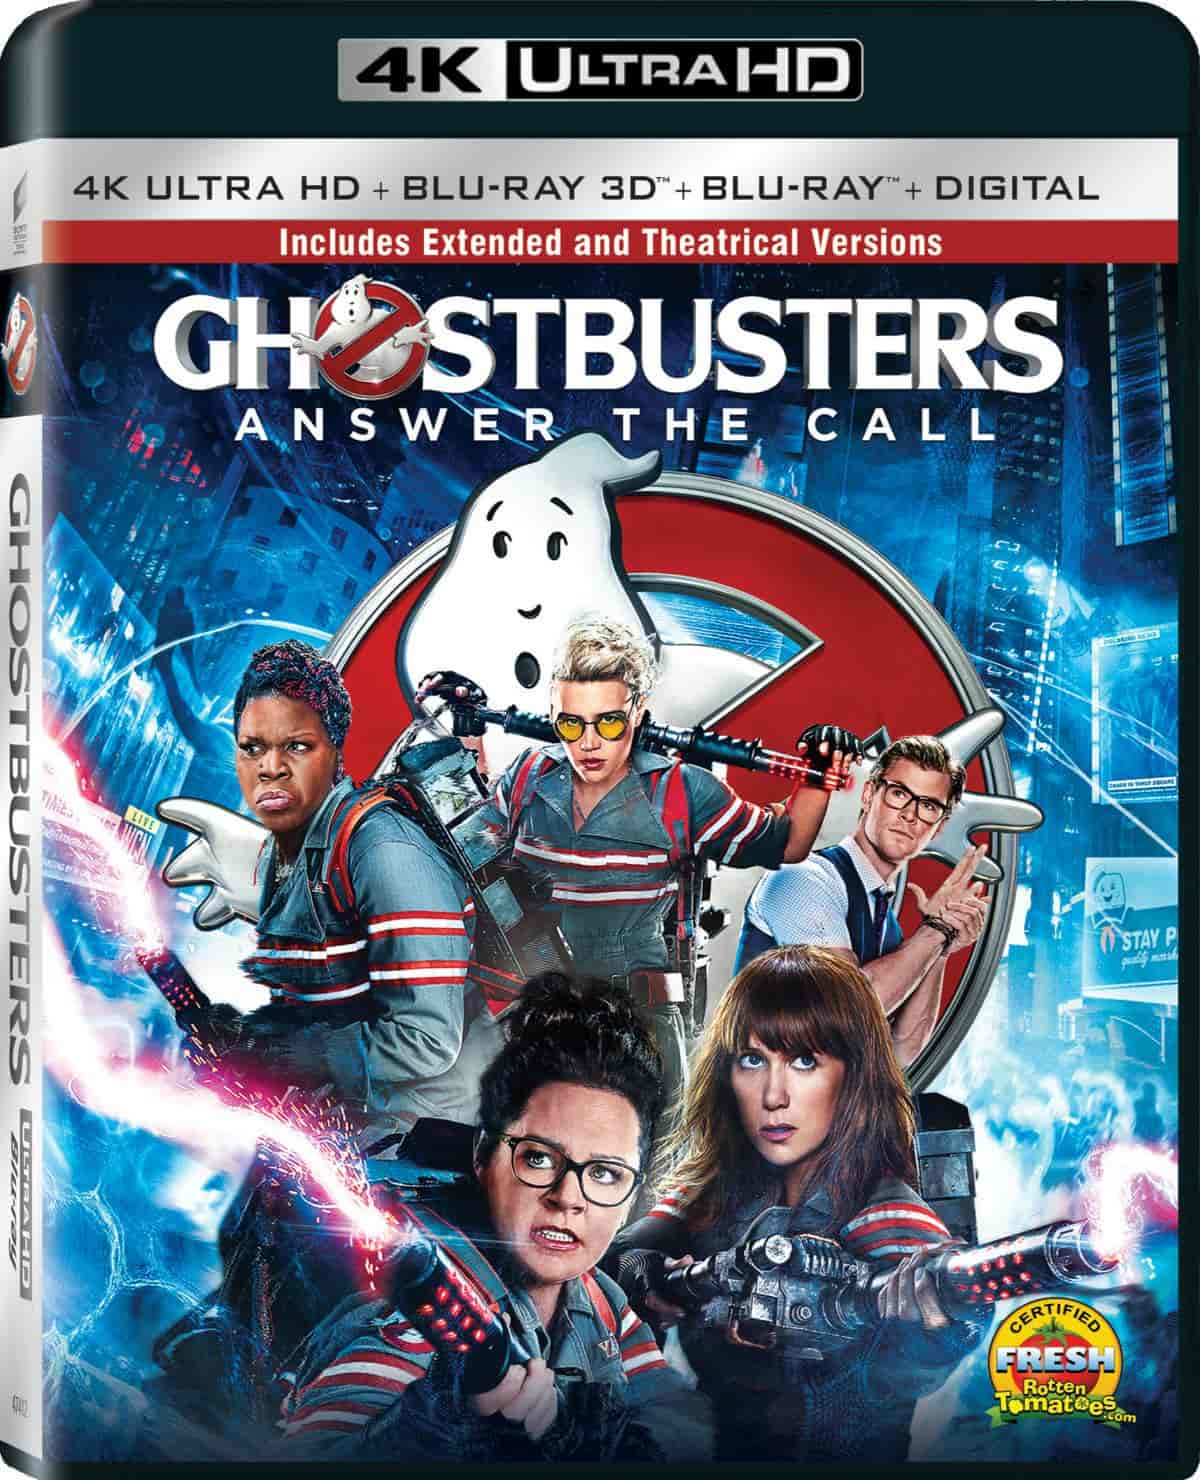 Ghostbusters 2016 EXTENDED Ultra HD Blu-ray 4K 2160p